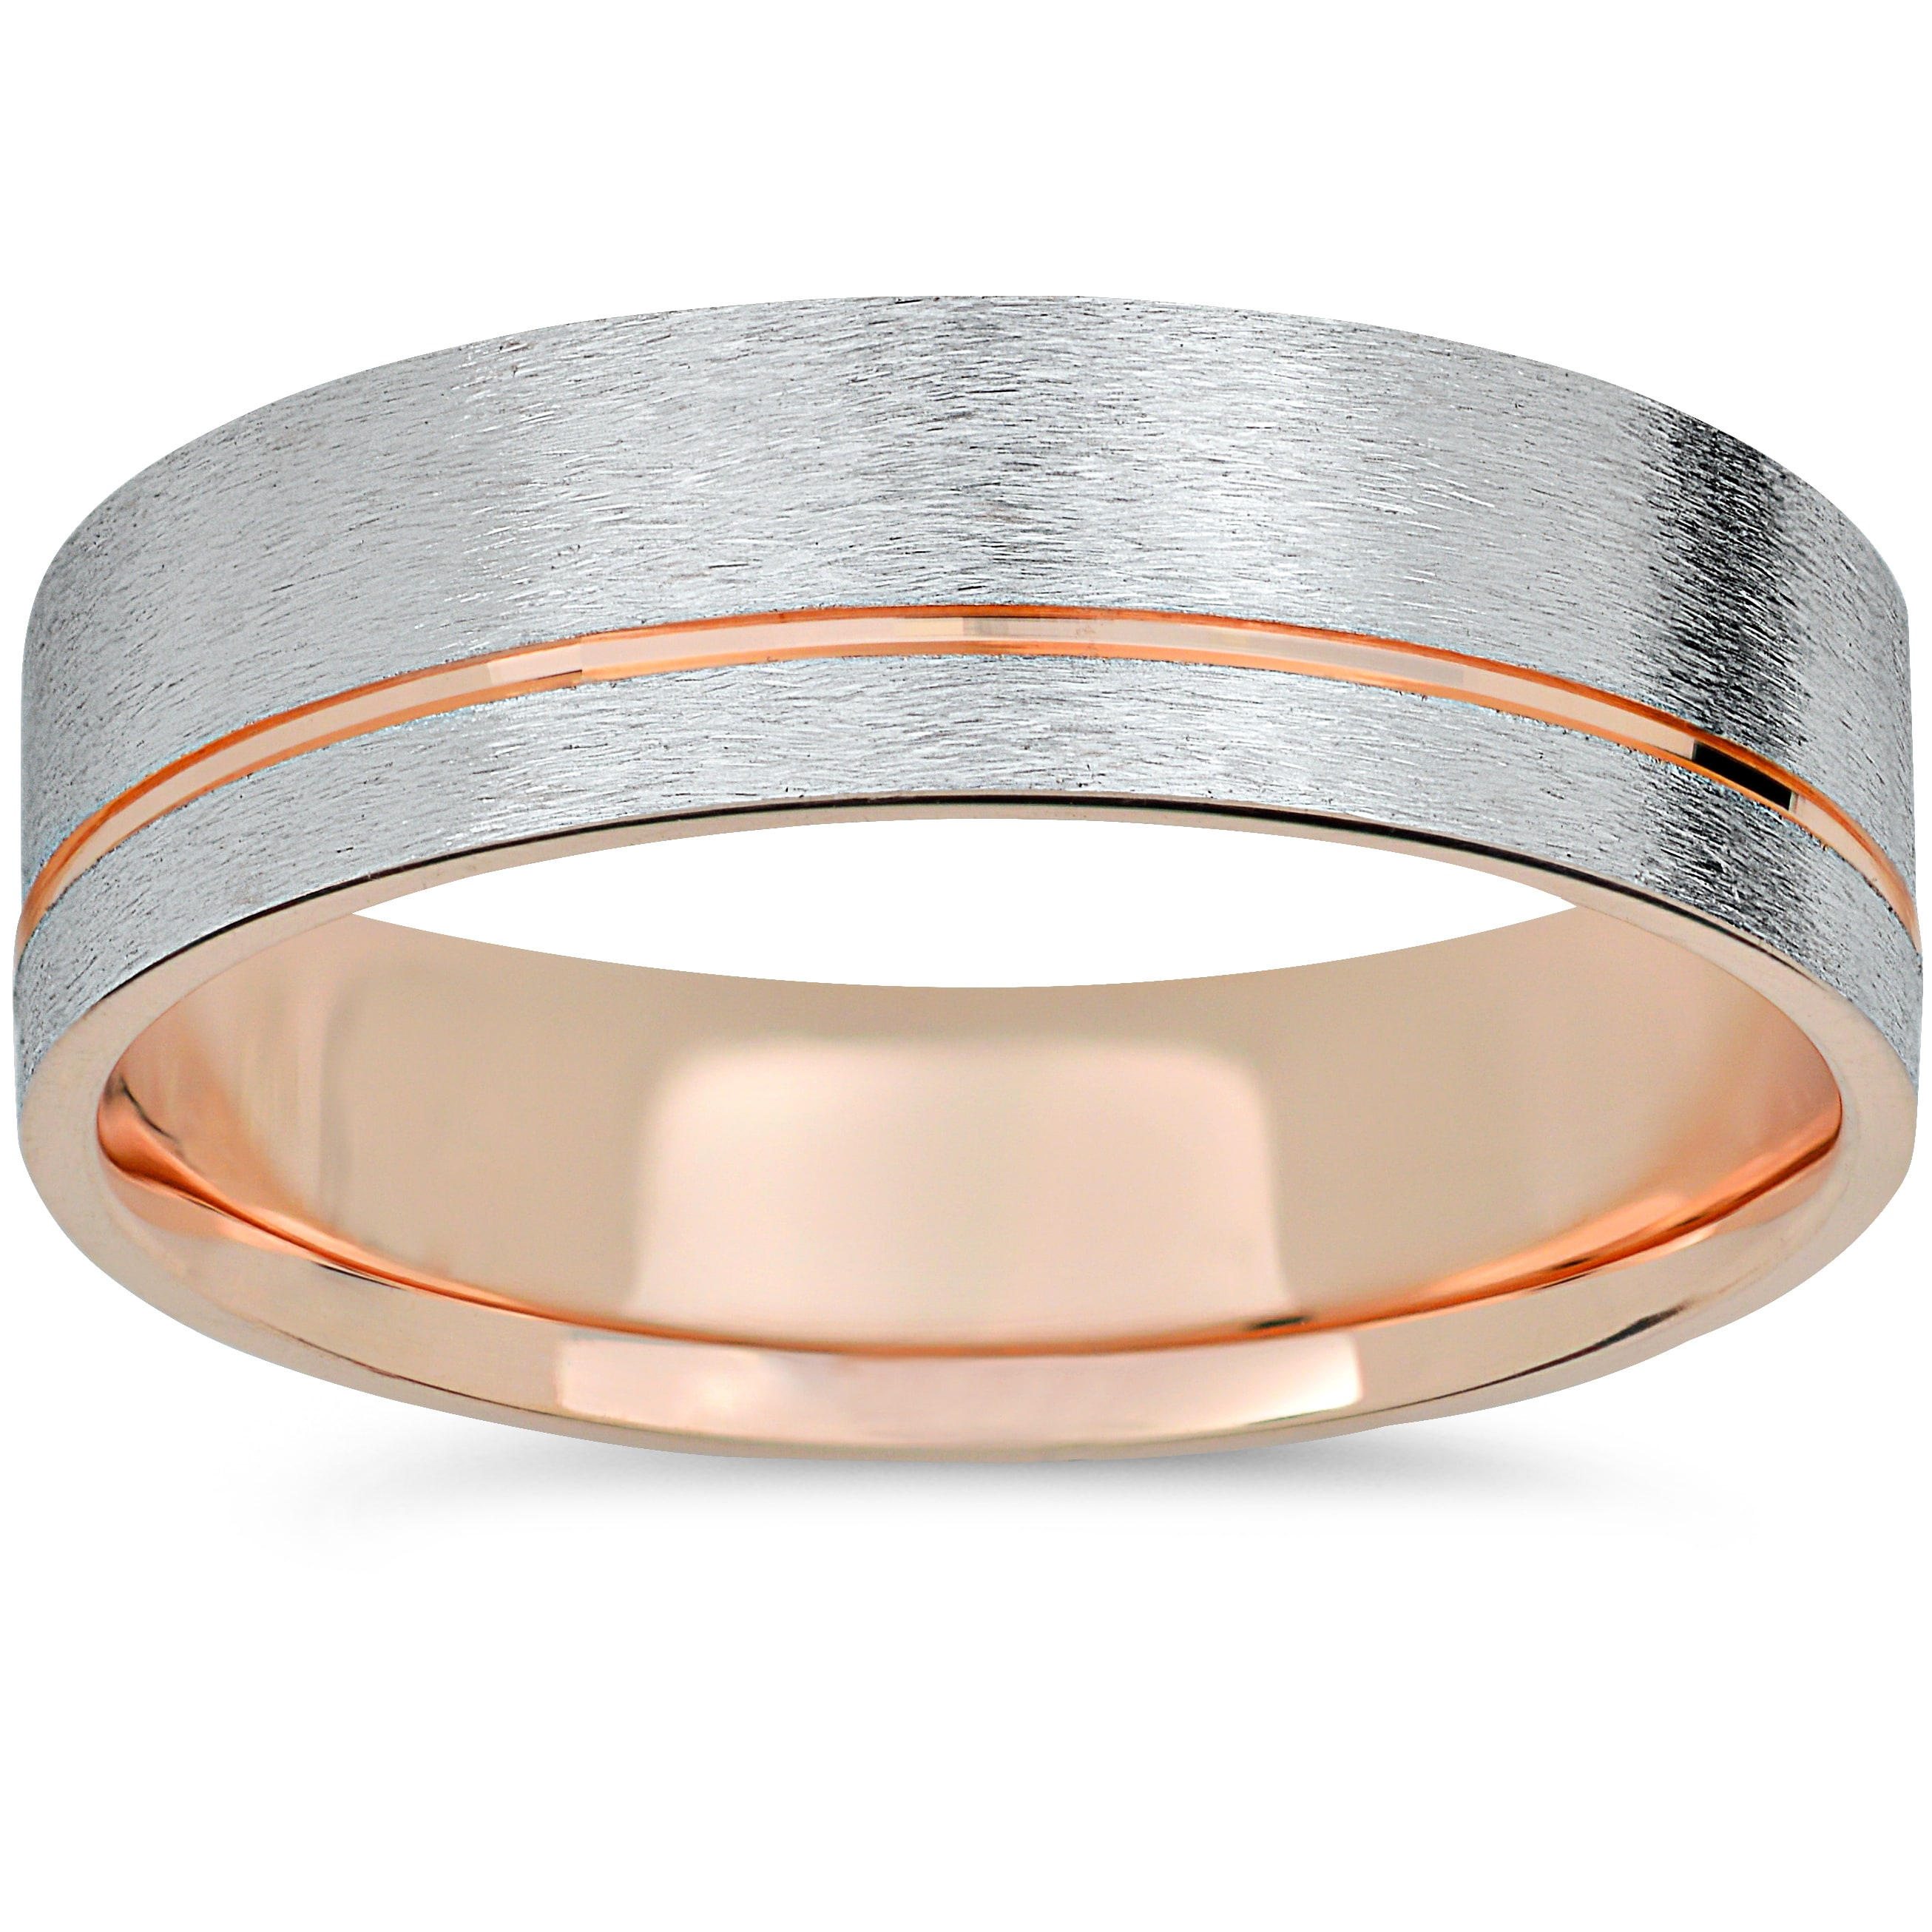 band white products beveled side gold mens edge desires rose bands benchmark by mikolay wedding